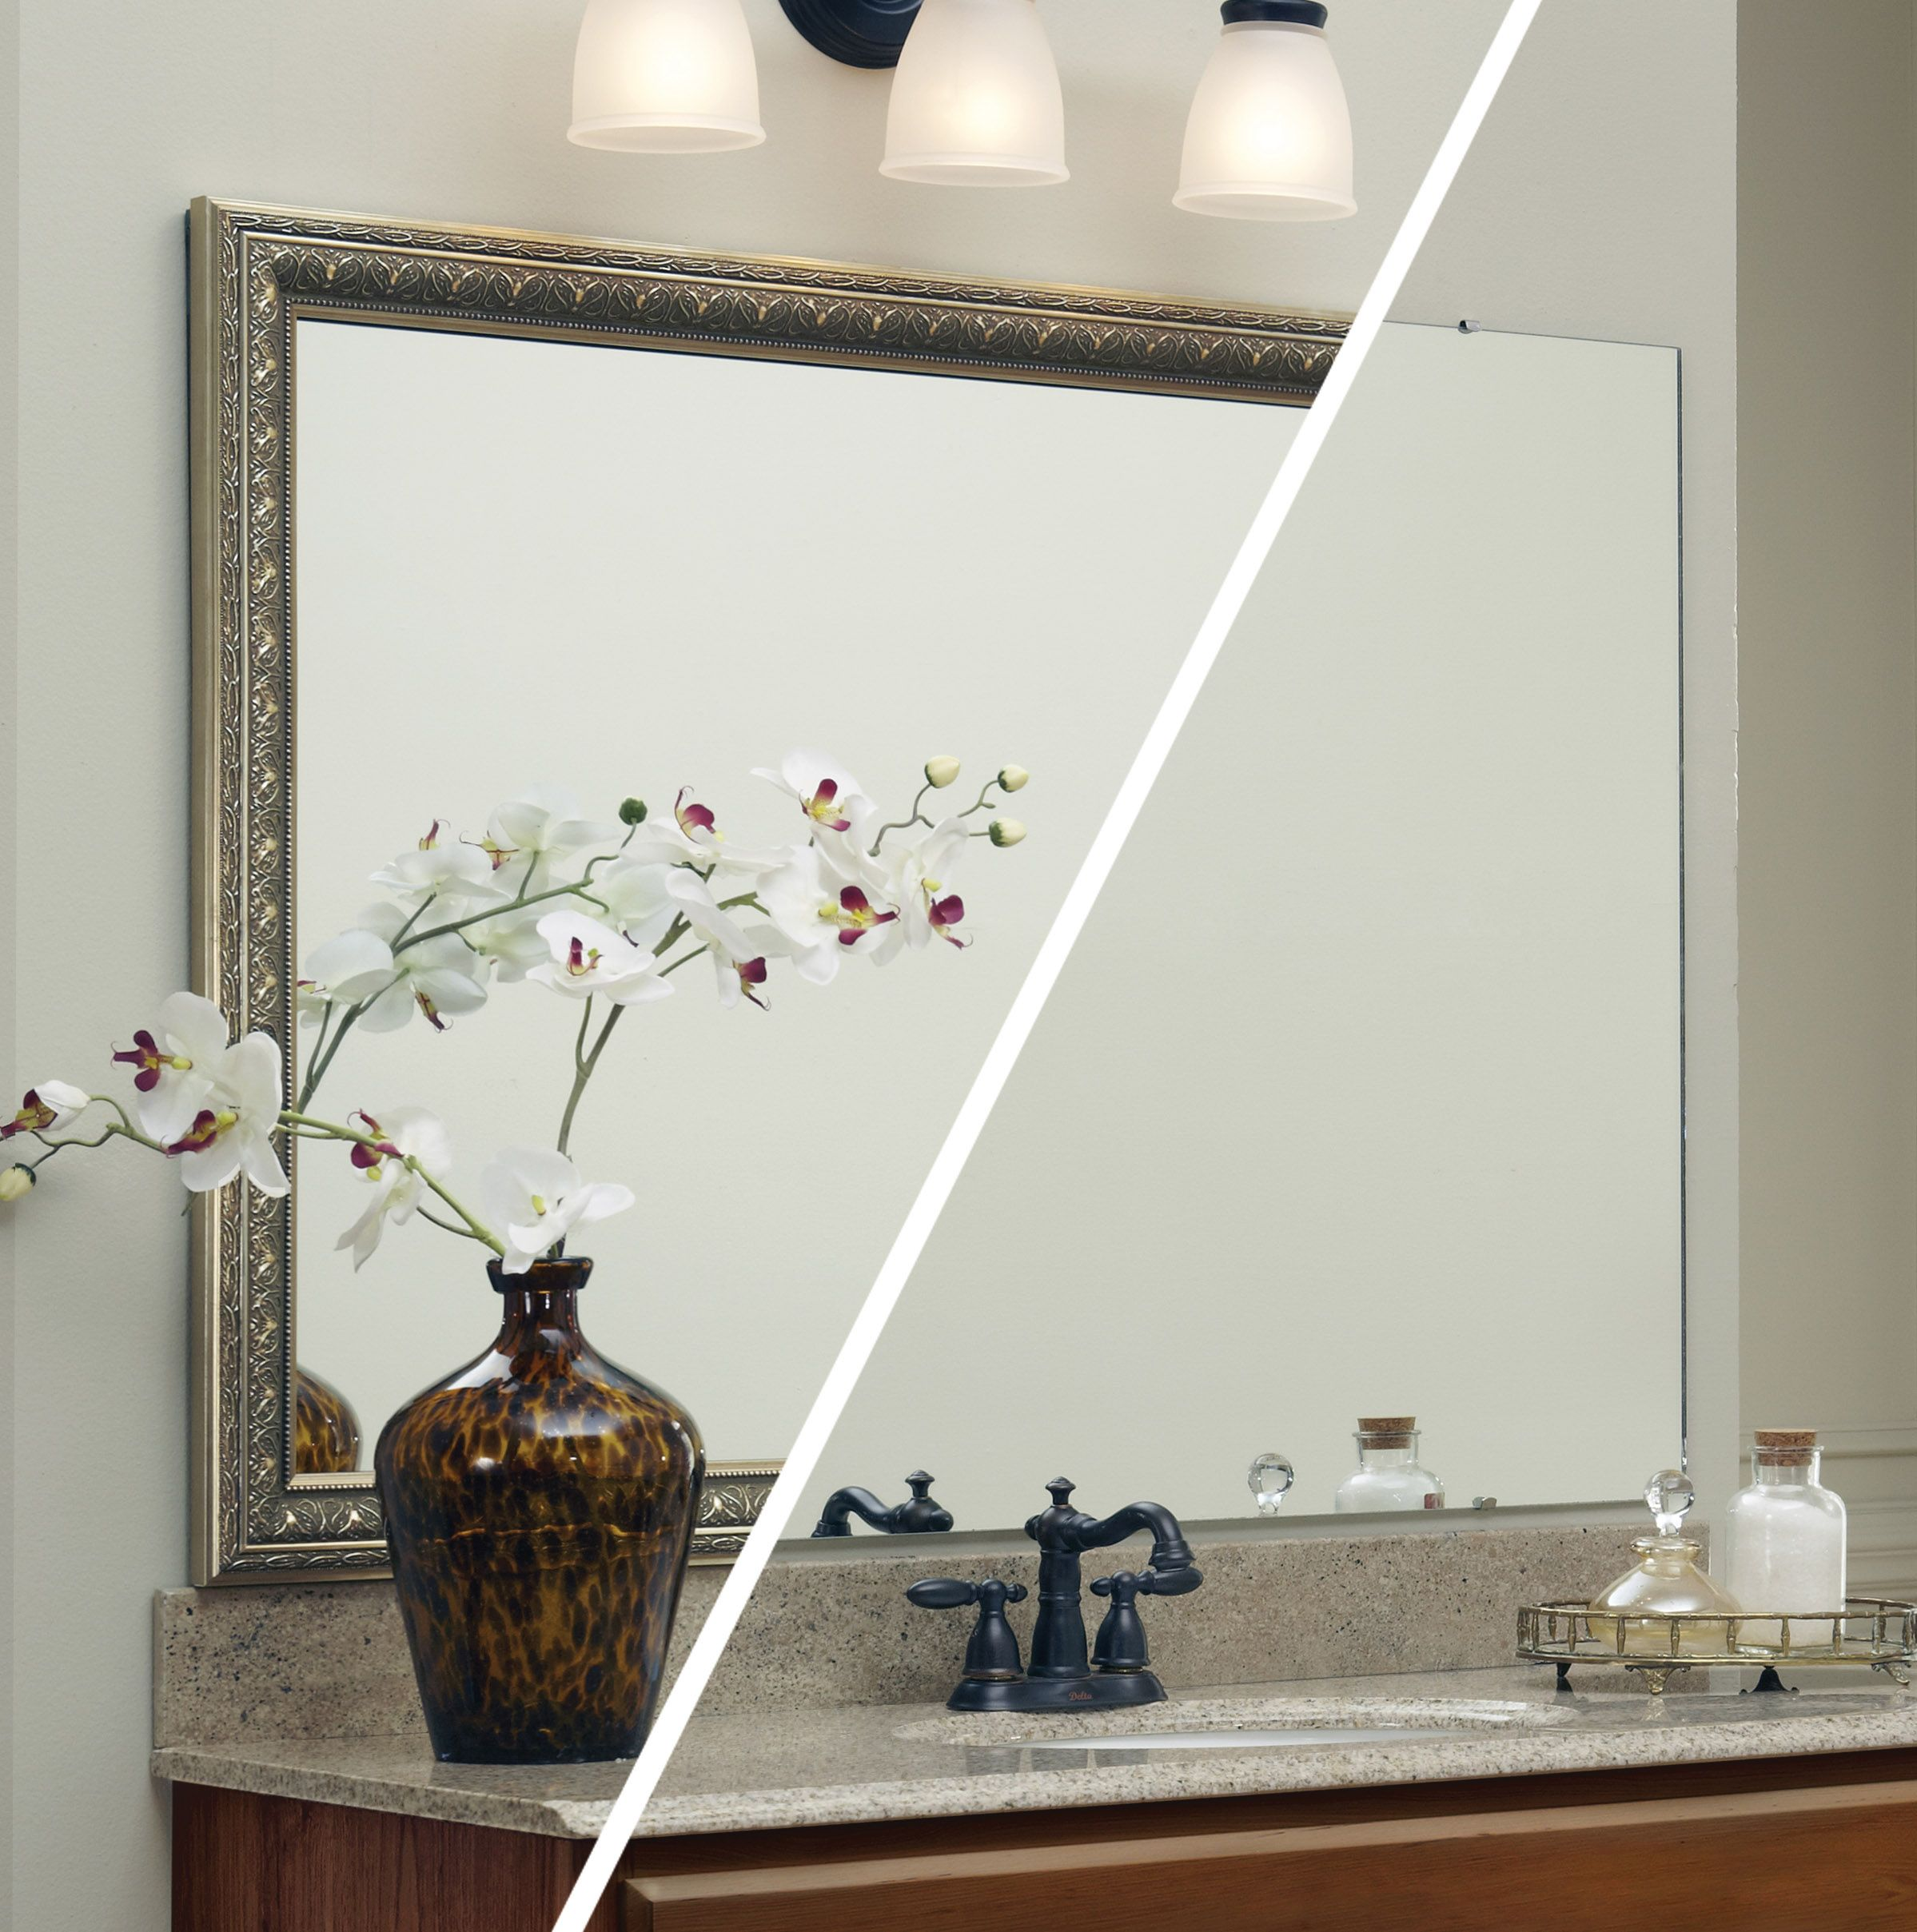 A frame was added to the plate glass mirror -while on the the wall ...